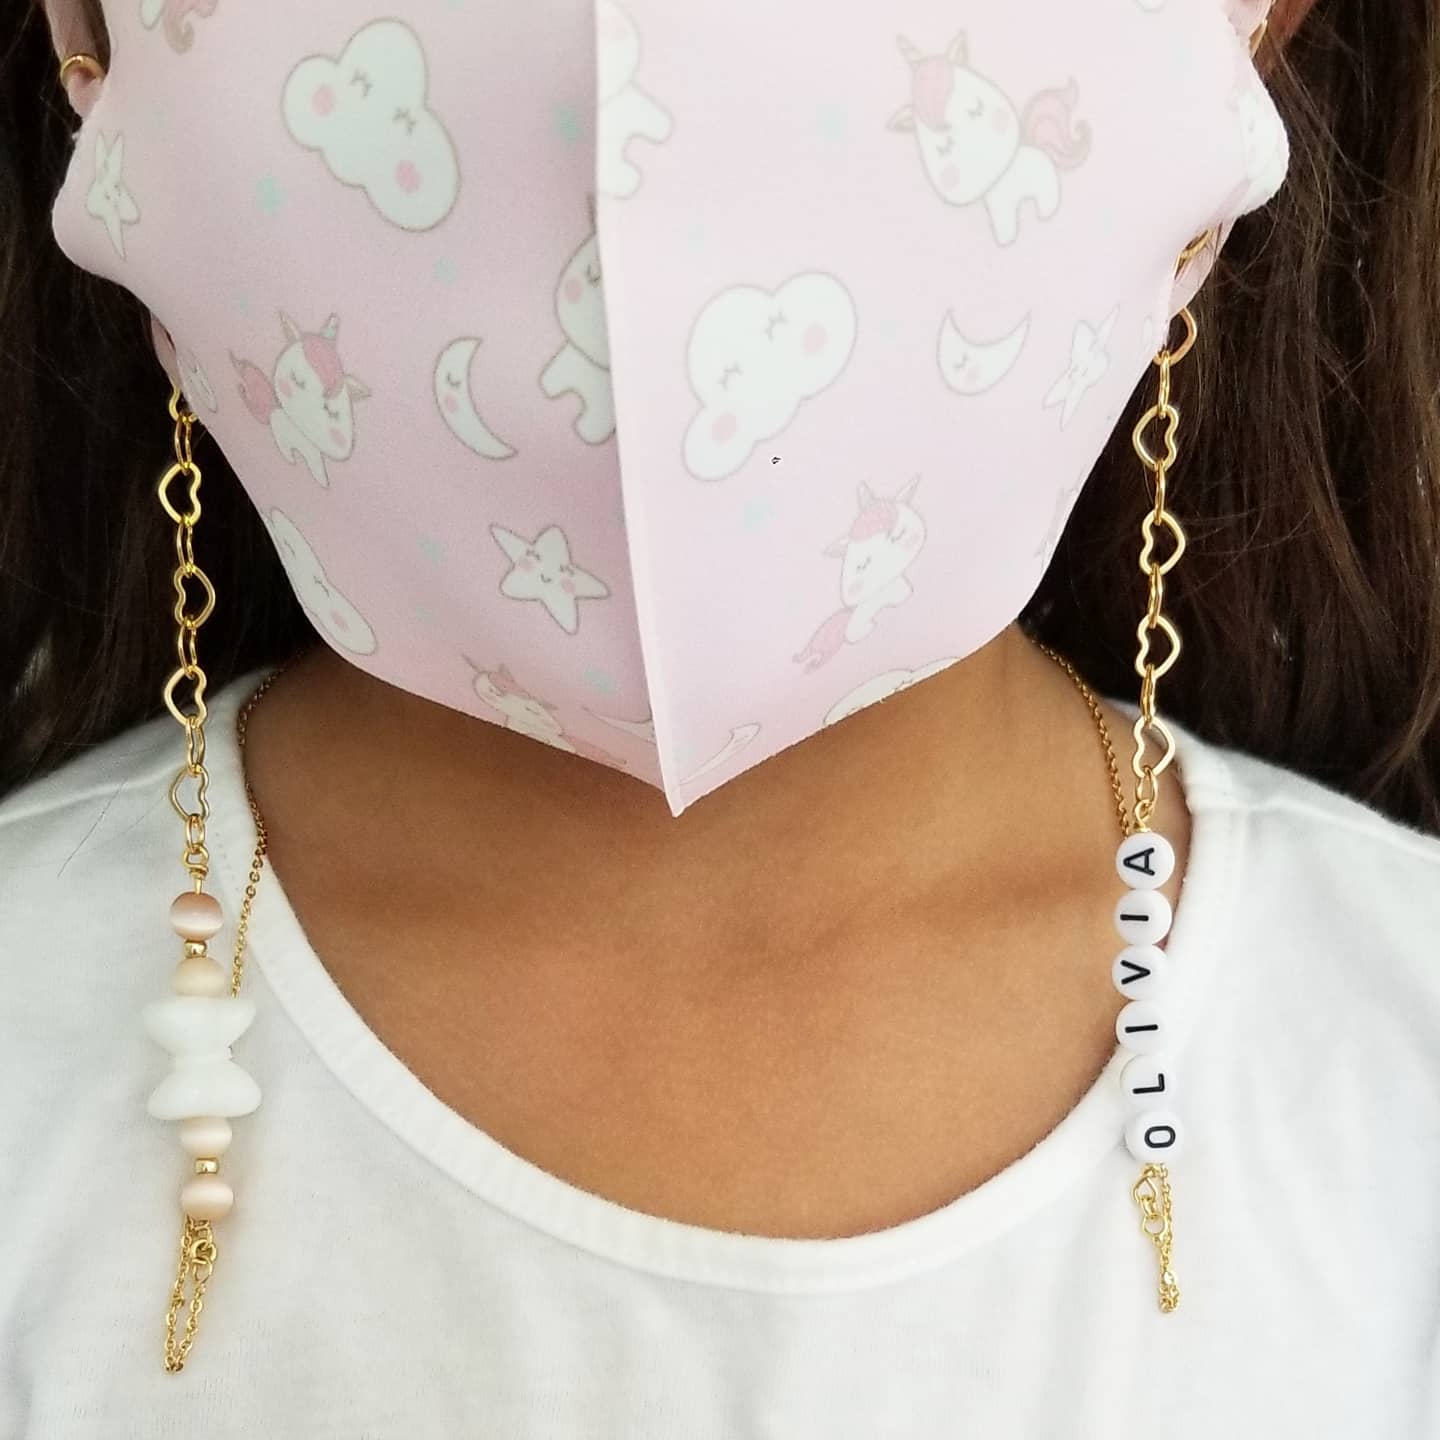 Kids Personalized Bow Mask Chain